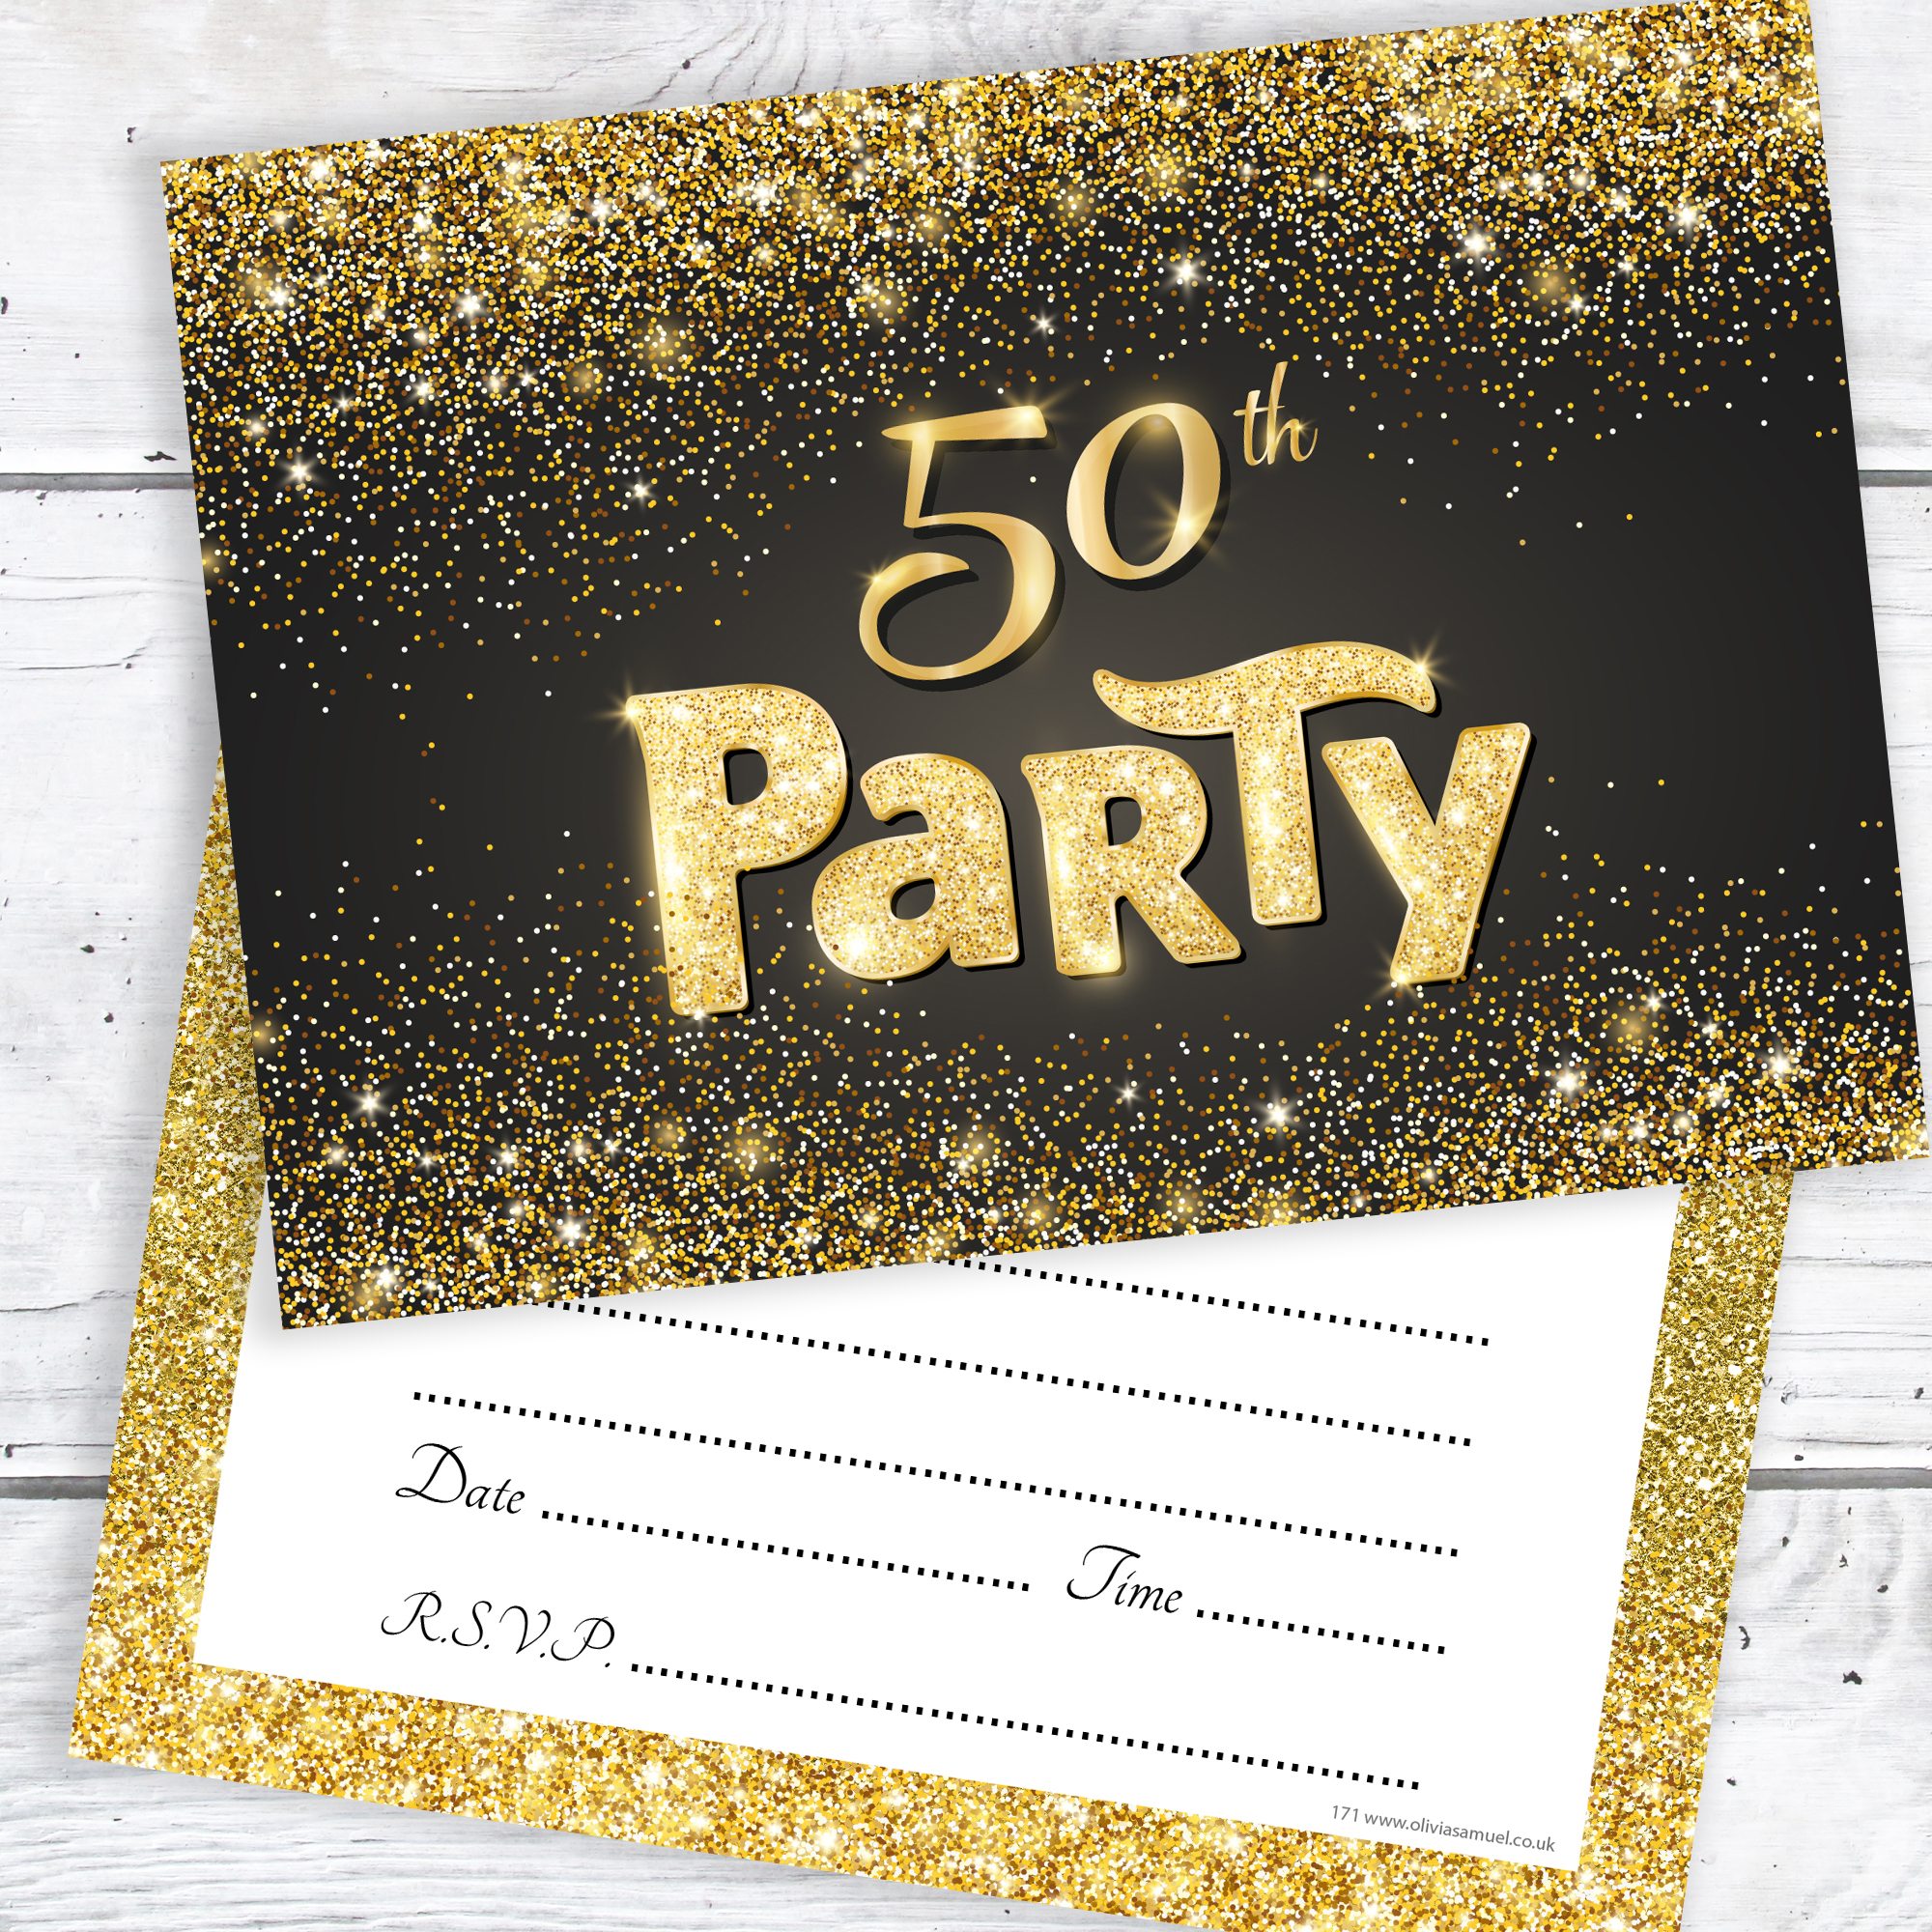 Black and gold effect 50th birthday party invitations ready to 50th birthday party invitations black and gold filmwisefo